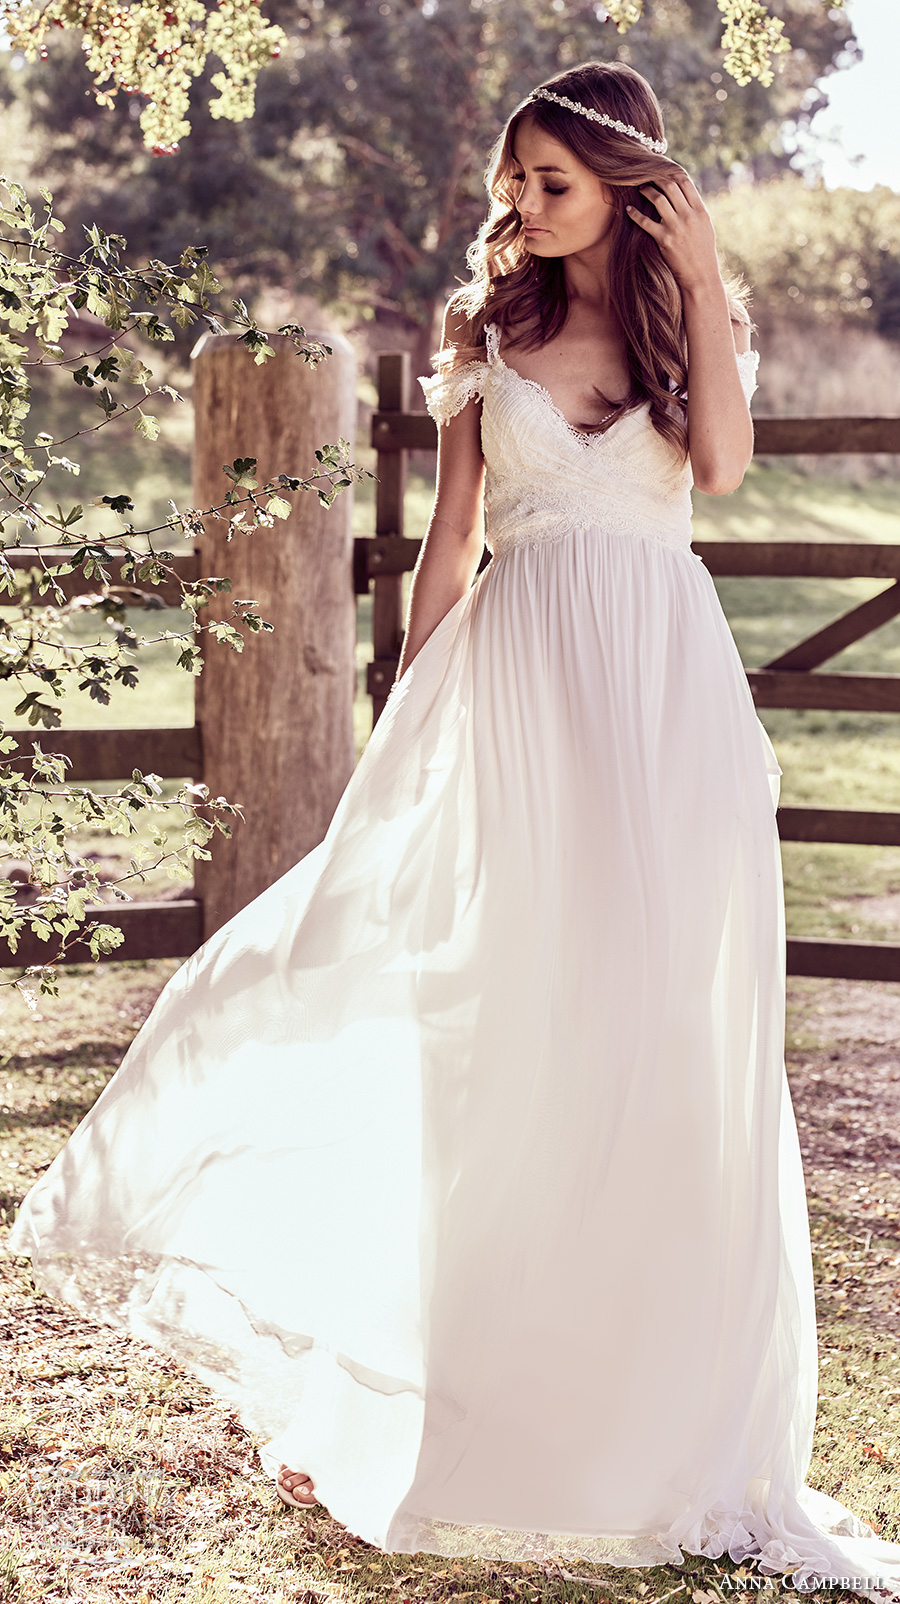 anna campbell 2018 bridal off shoulder with strap sweetheart neckline wrap over bodice soft a line wedding dress open back sweep train (9) mv